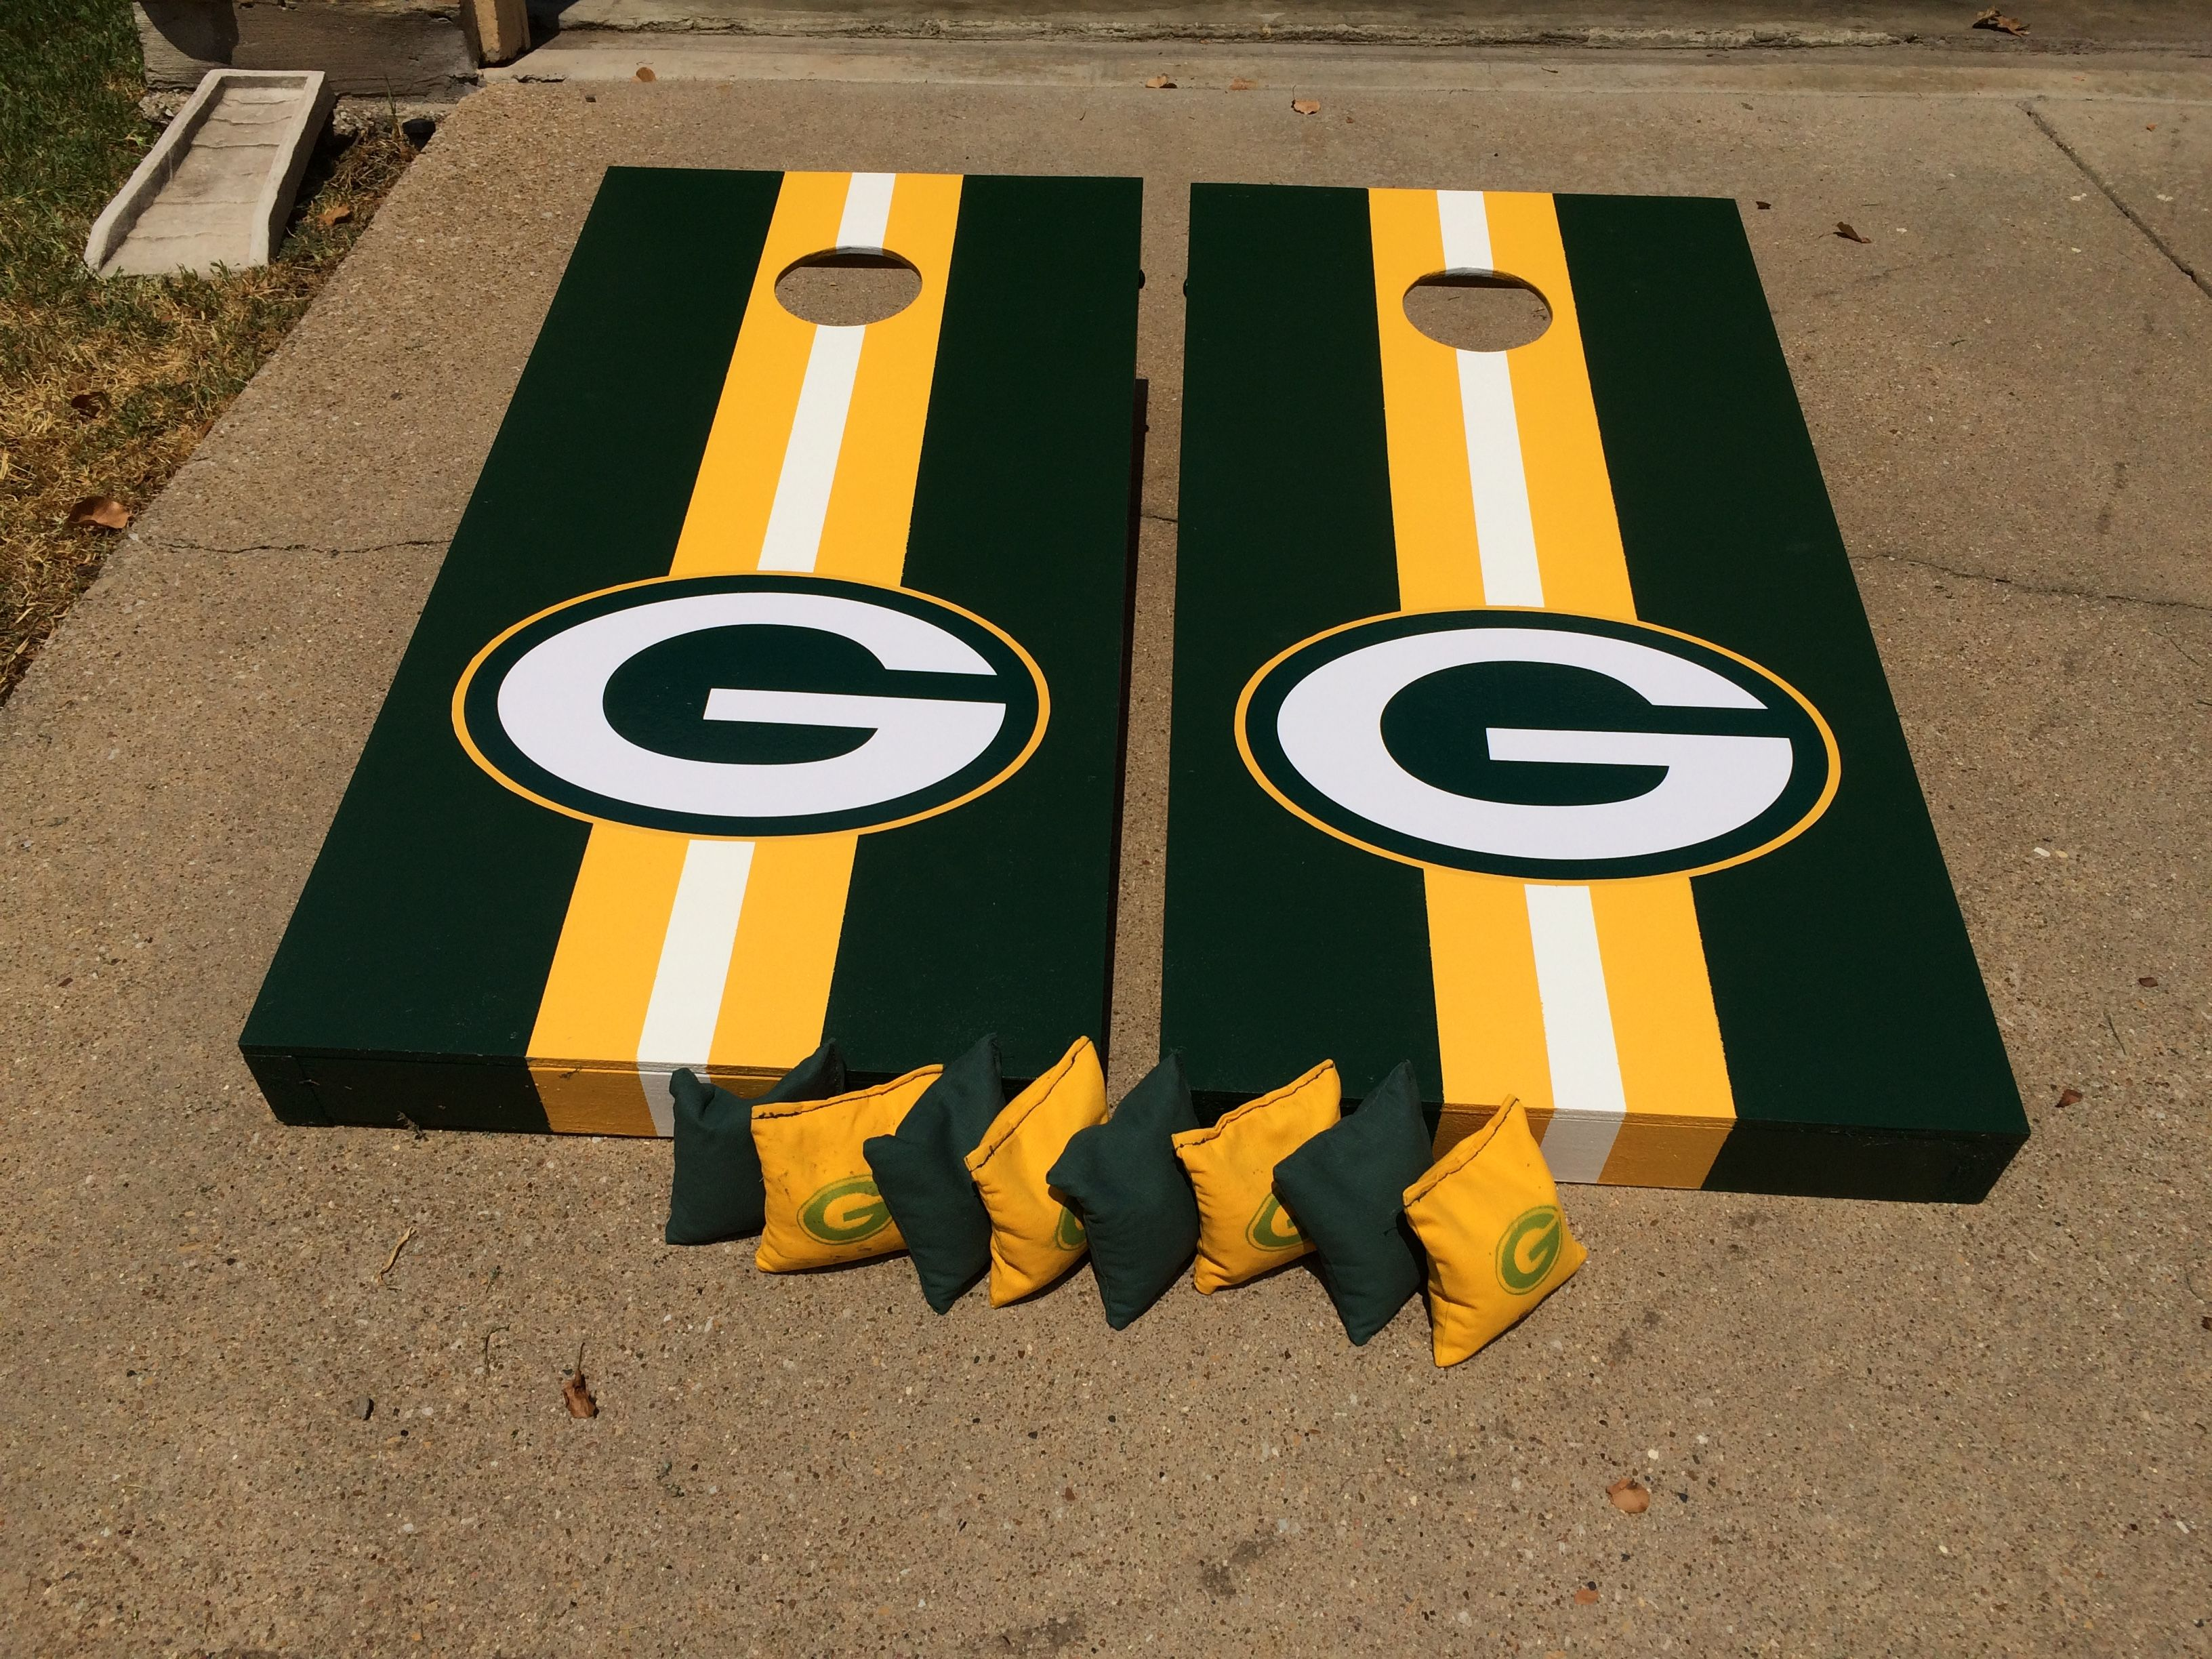 Cornhole Boards With Bags Cornhole Designs Cornhole Boards Cornhole Boards Designs